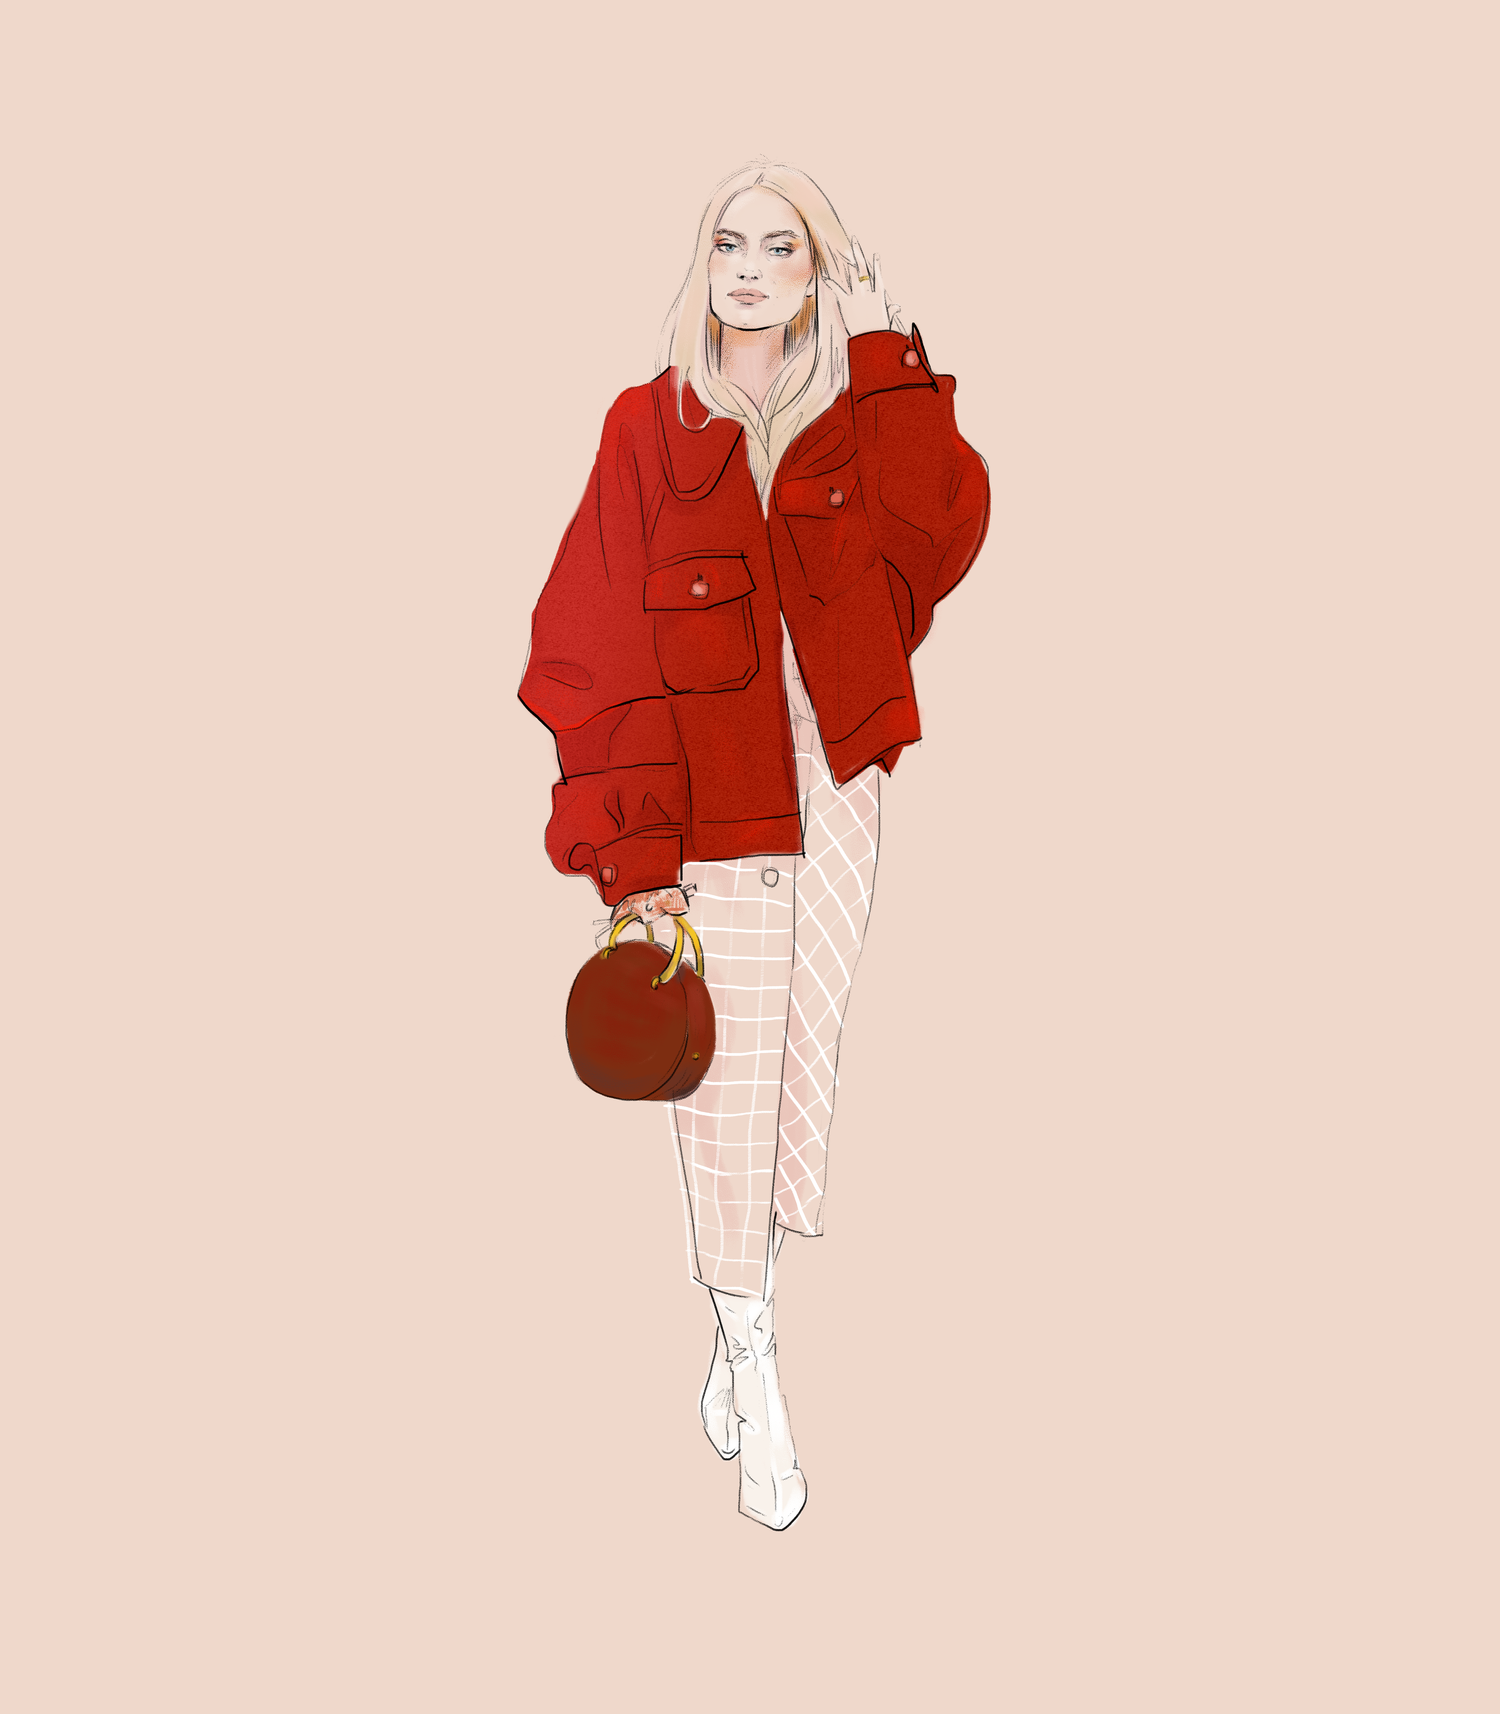 Red-Coat-Fashion-Illo.png